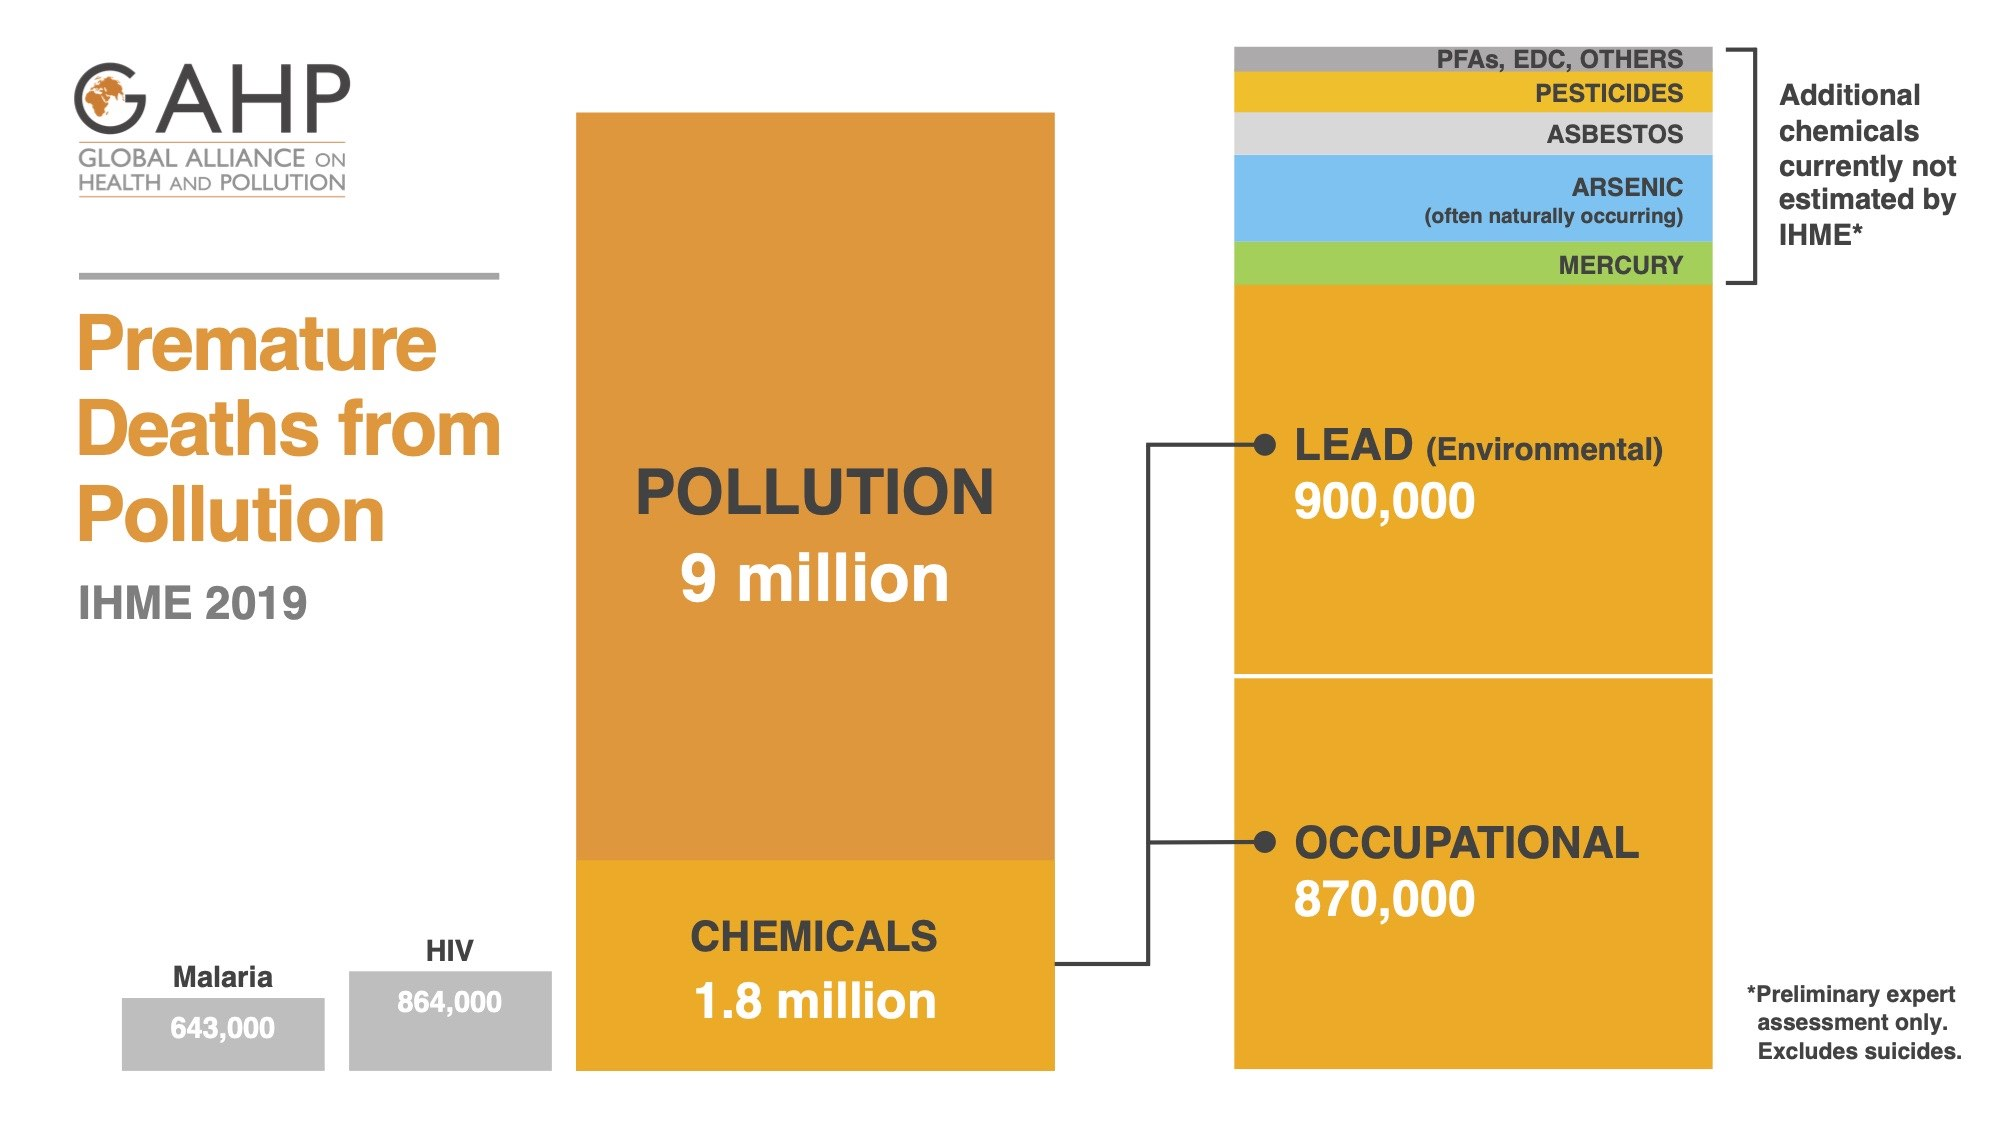 Chart displays IHME data on premature deaths from pollution. There are 1.8 million premature deaths from chemicals each year. Around half of those are from environmental exposure to lead.